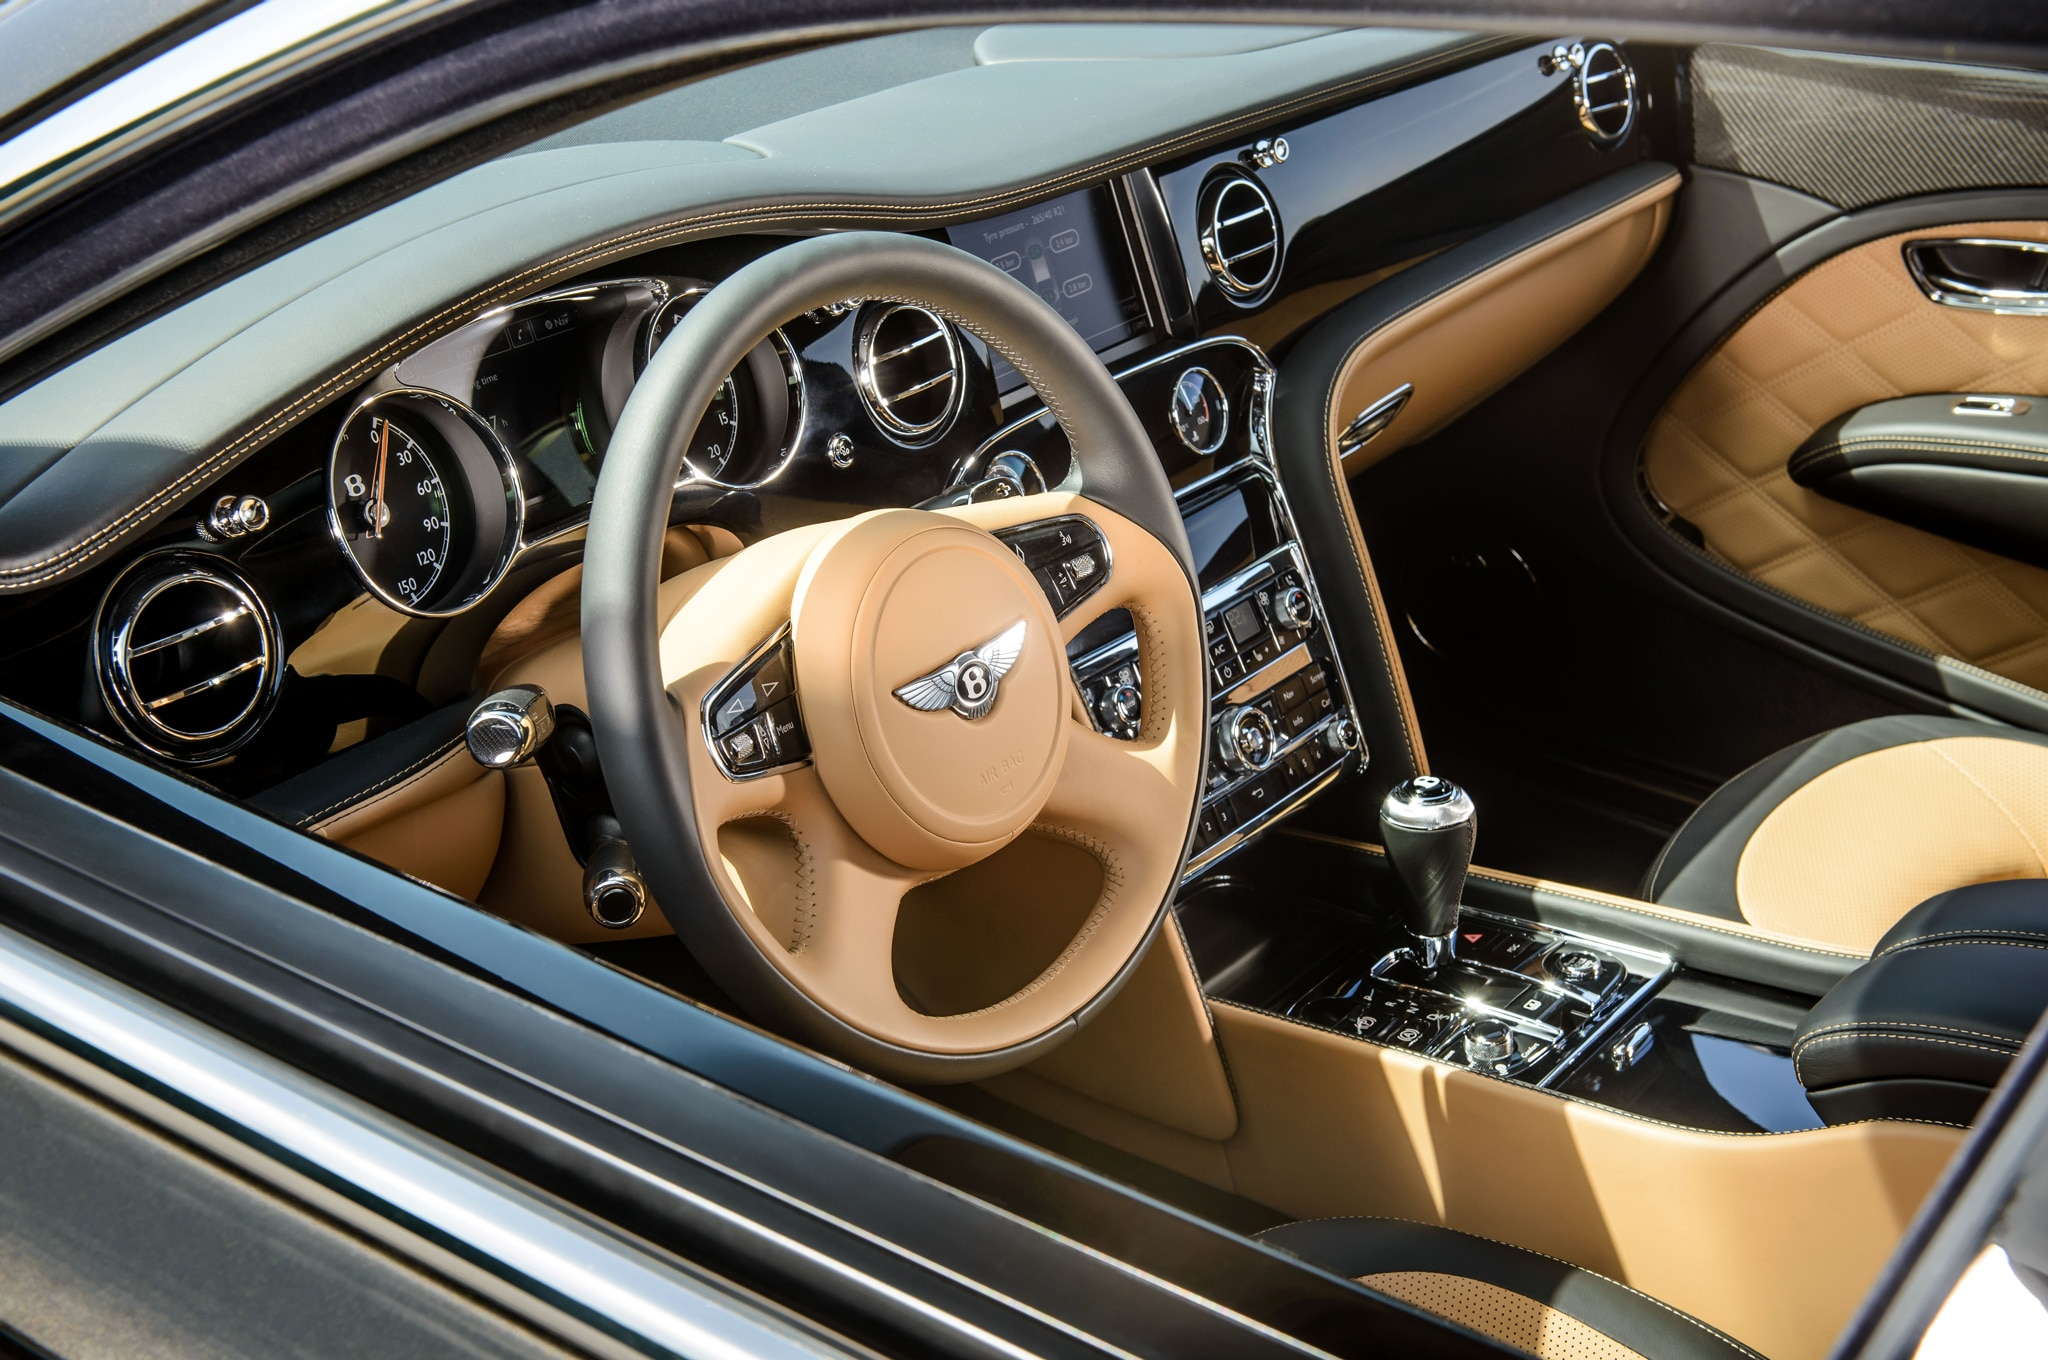 2015 bentley mulsanne debuts at 2014 paris motor show show more vanachro Images